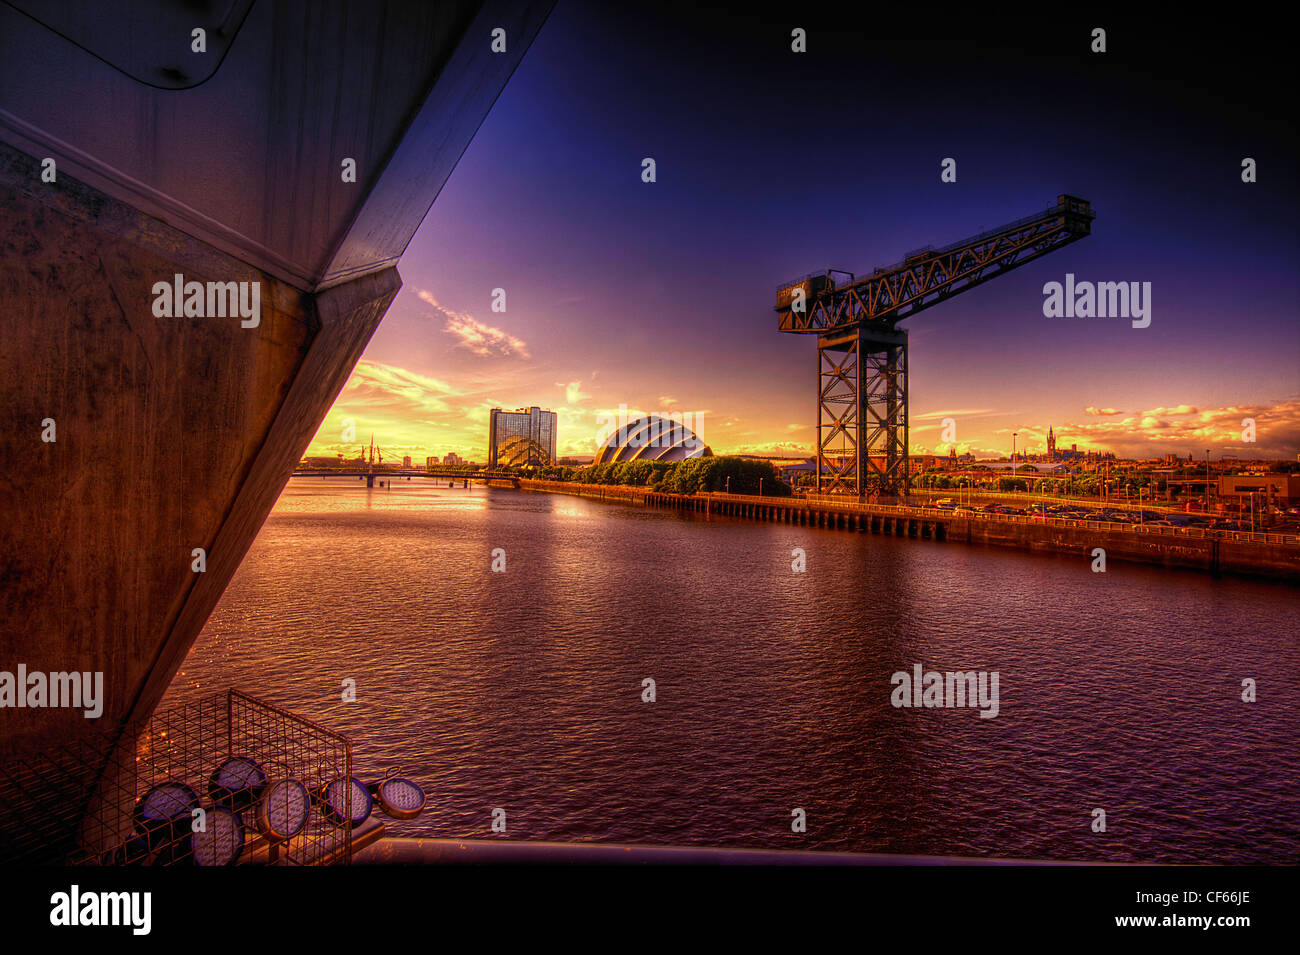 A view across the River Clyde toward the Finnieston Crane in Glasgow. - Stock Image